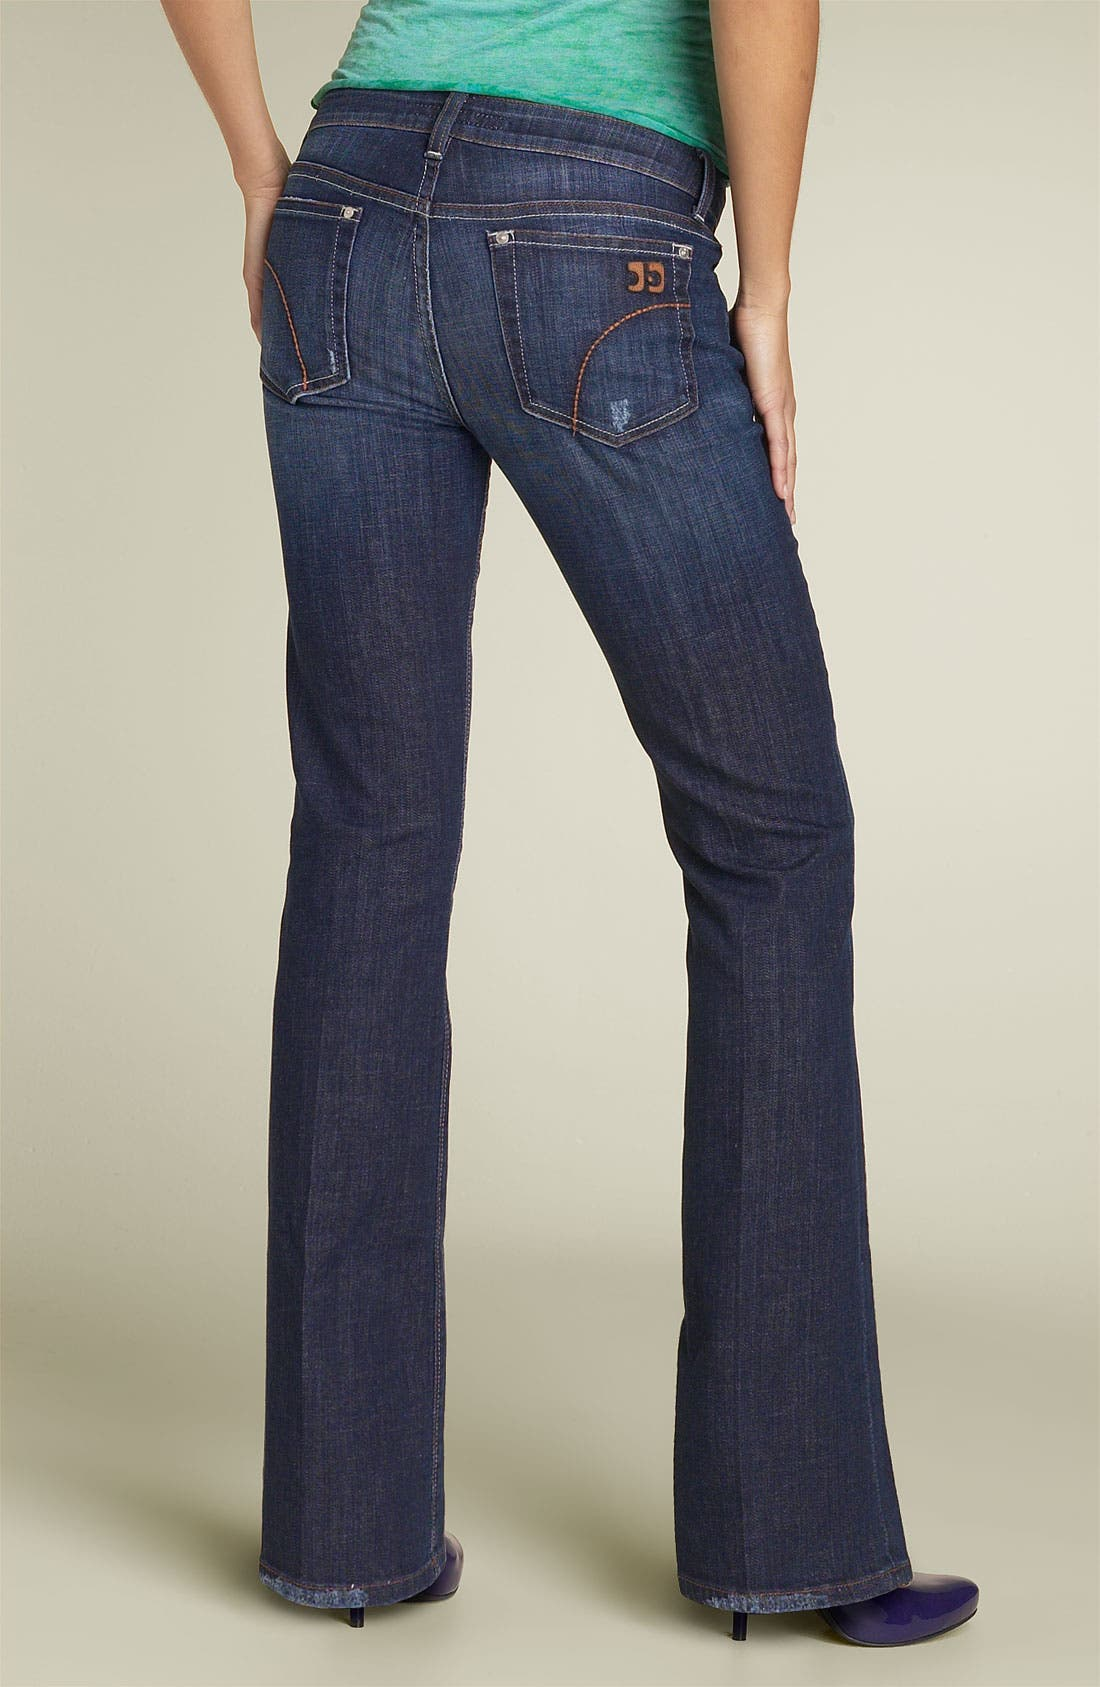 Alternate Image 1 Selected - Joe's Jeans 'Honey' Curvy Fit Stretch Jeans (Ryder Wash)